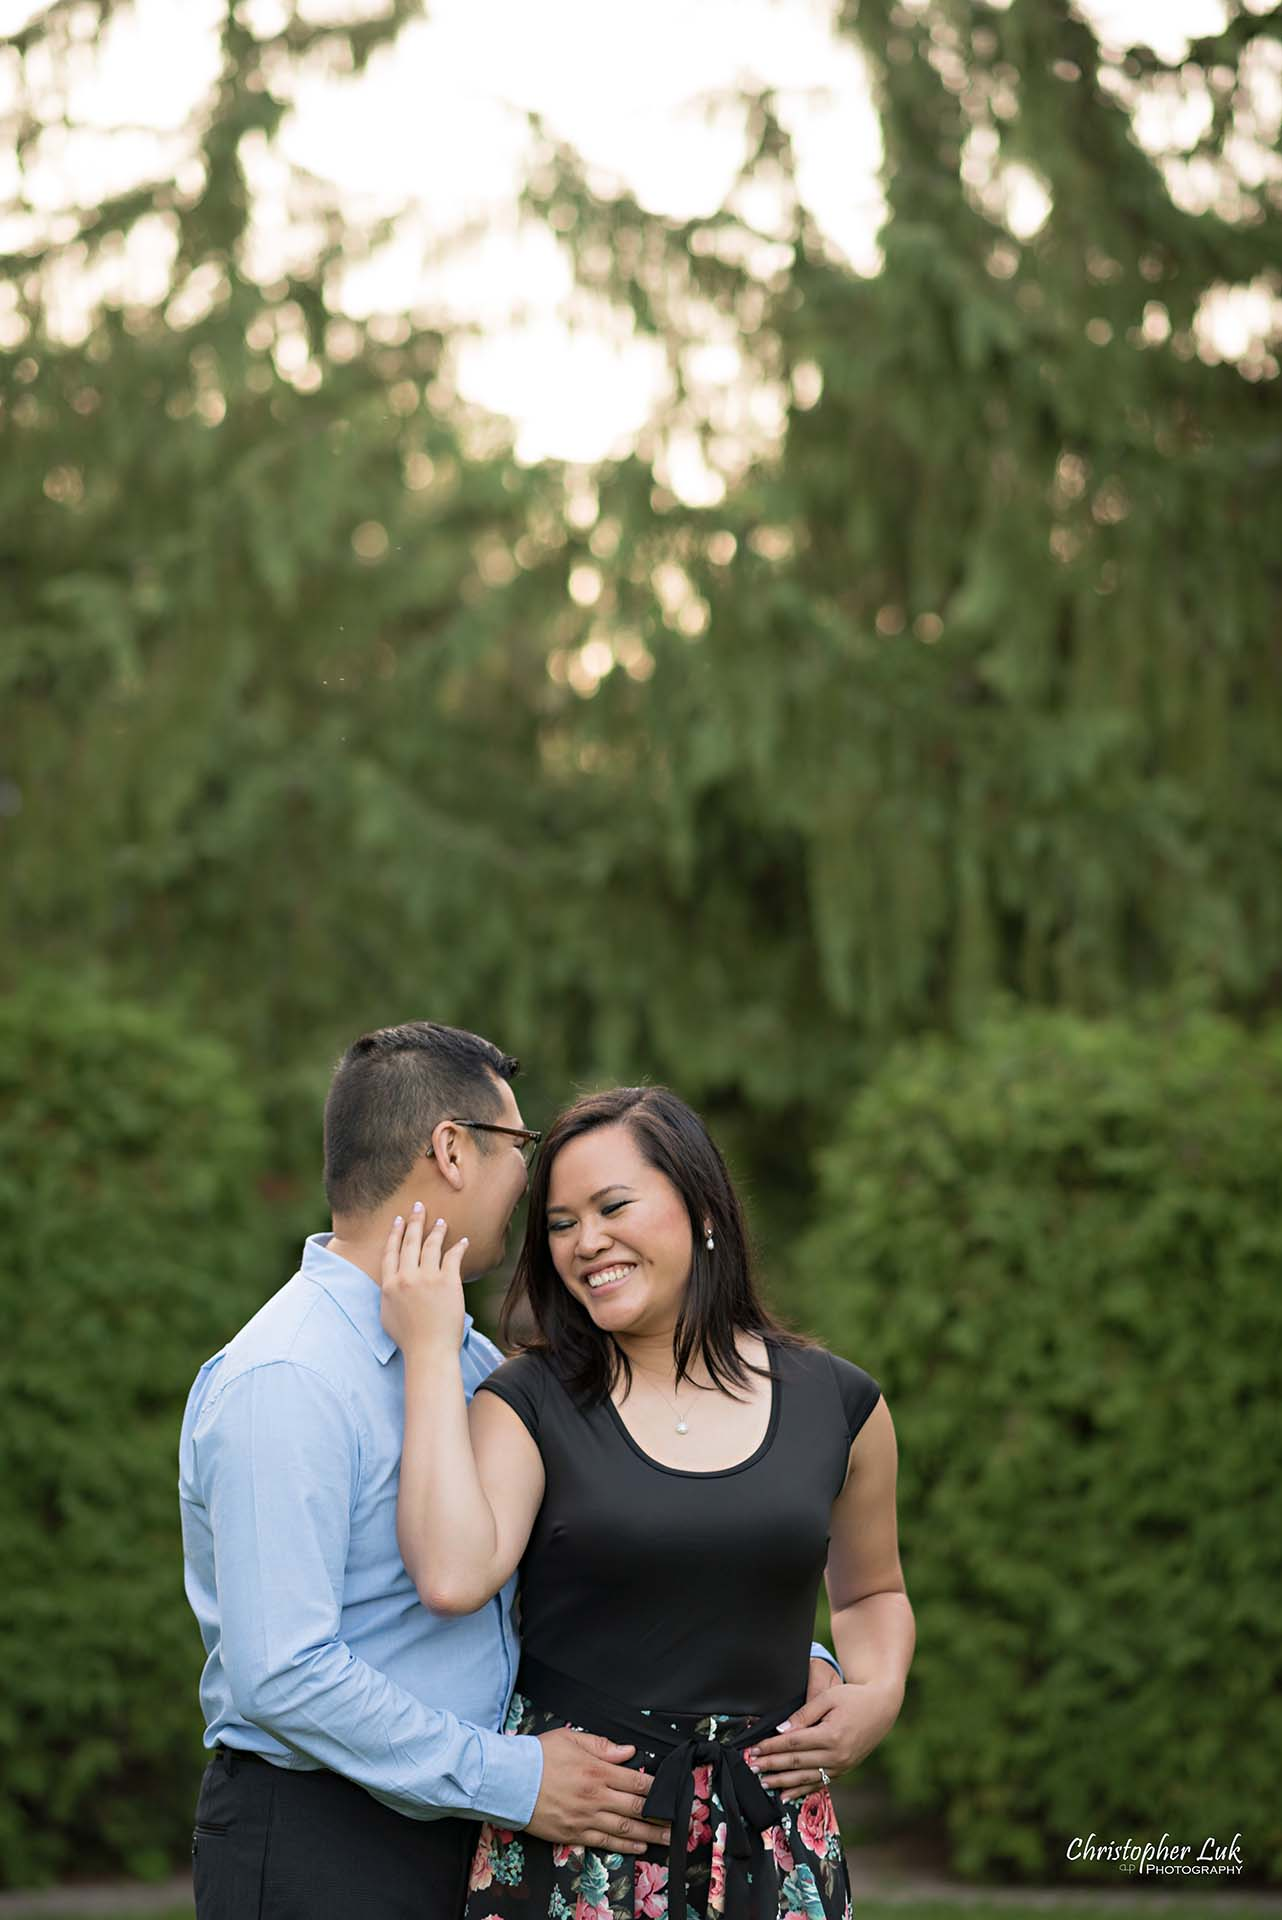 Christopher Luk Toronto Wedding Family Event Corporate Commercial Headshot Photographer Edith Jeff Engagement Session Alexander Muir Memorial Gardens Park MidTown Photo Location Natural Candid Photojournalistic - Bride and Groom Holding Each Other Together Sweet Smile Laugh